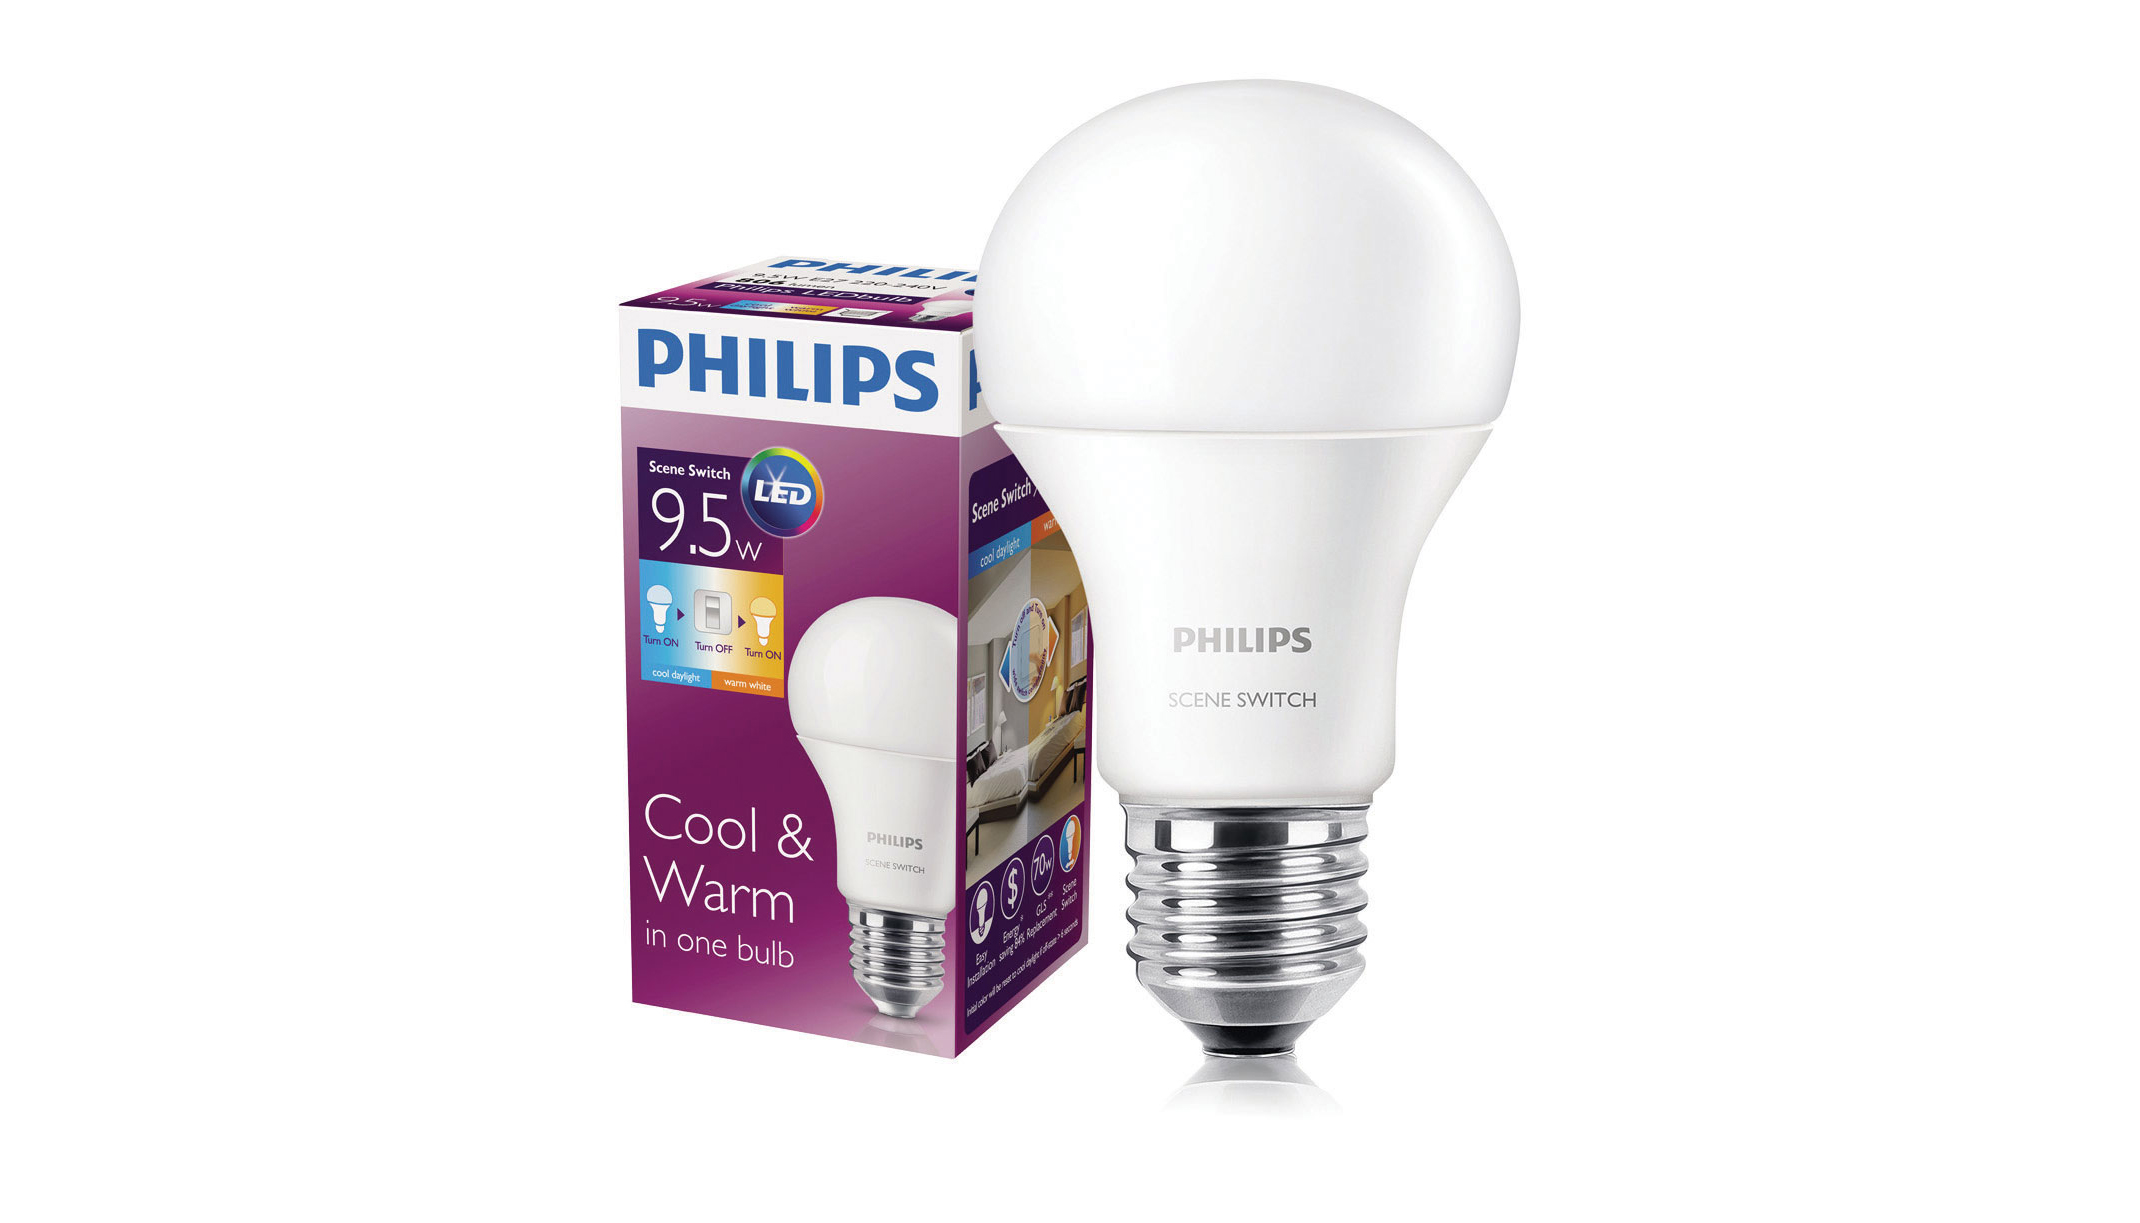 Led Lampen Philips : Philips sceneswitch plug and play led lamp electrical contractor